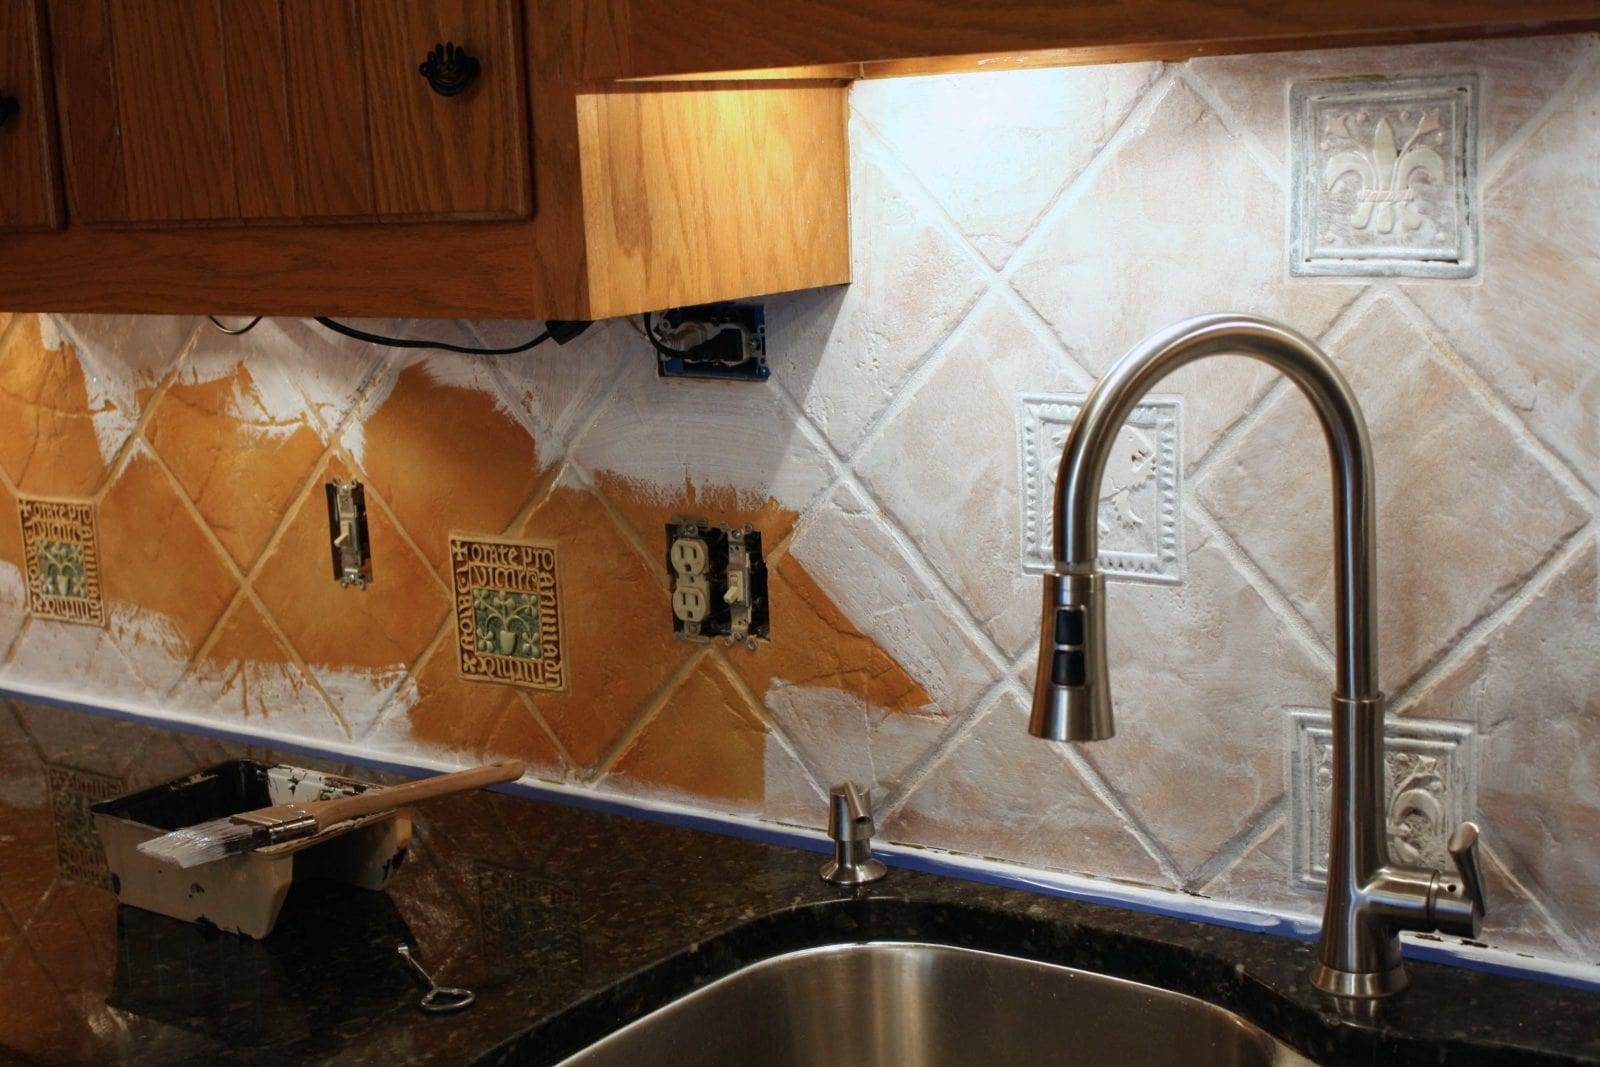 You Can Paint A Tile Backsplash Talk About A Thrifty Update Full Tutorial By